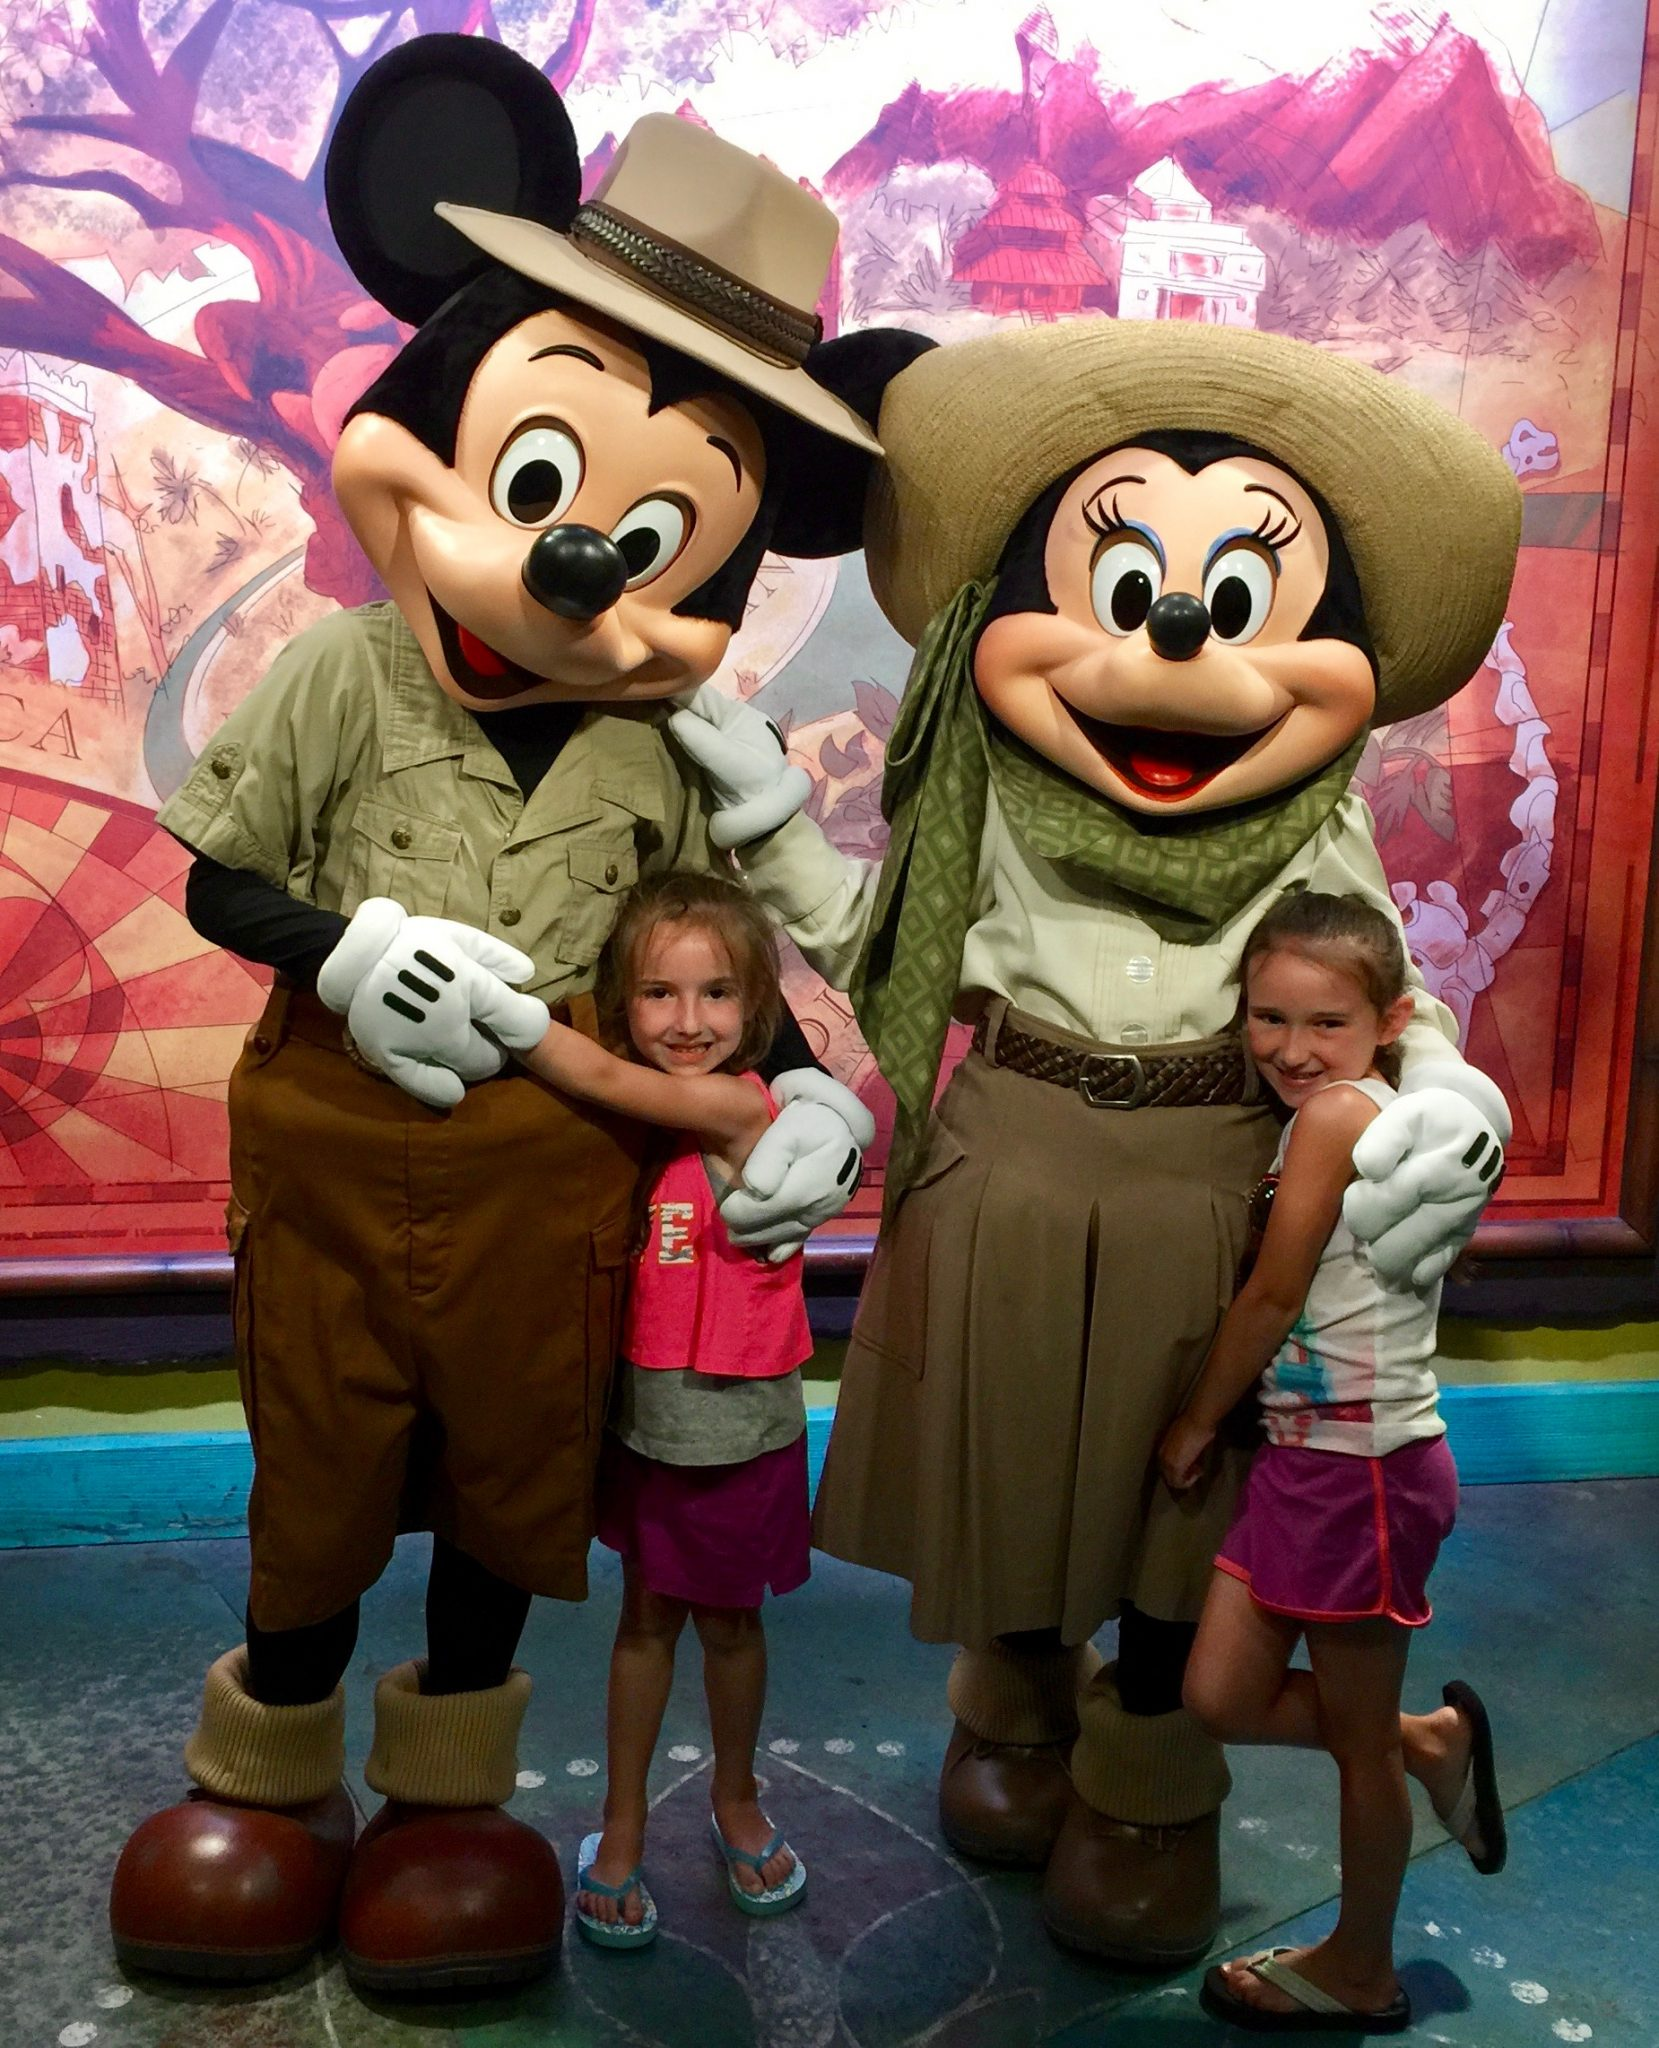 Mickey Mouse and Minnie Mouse at Disney World's Animal Kingdom